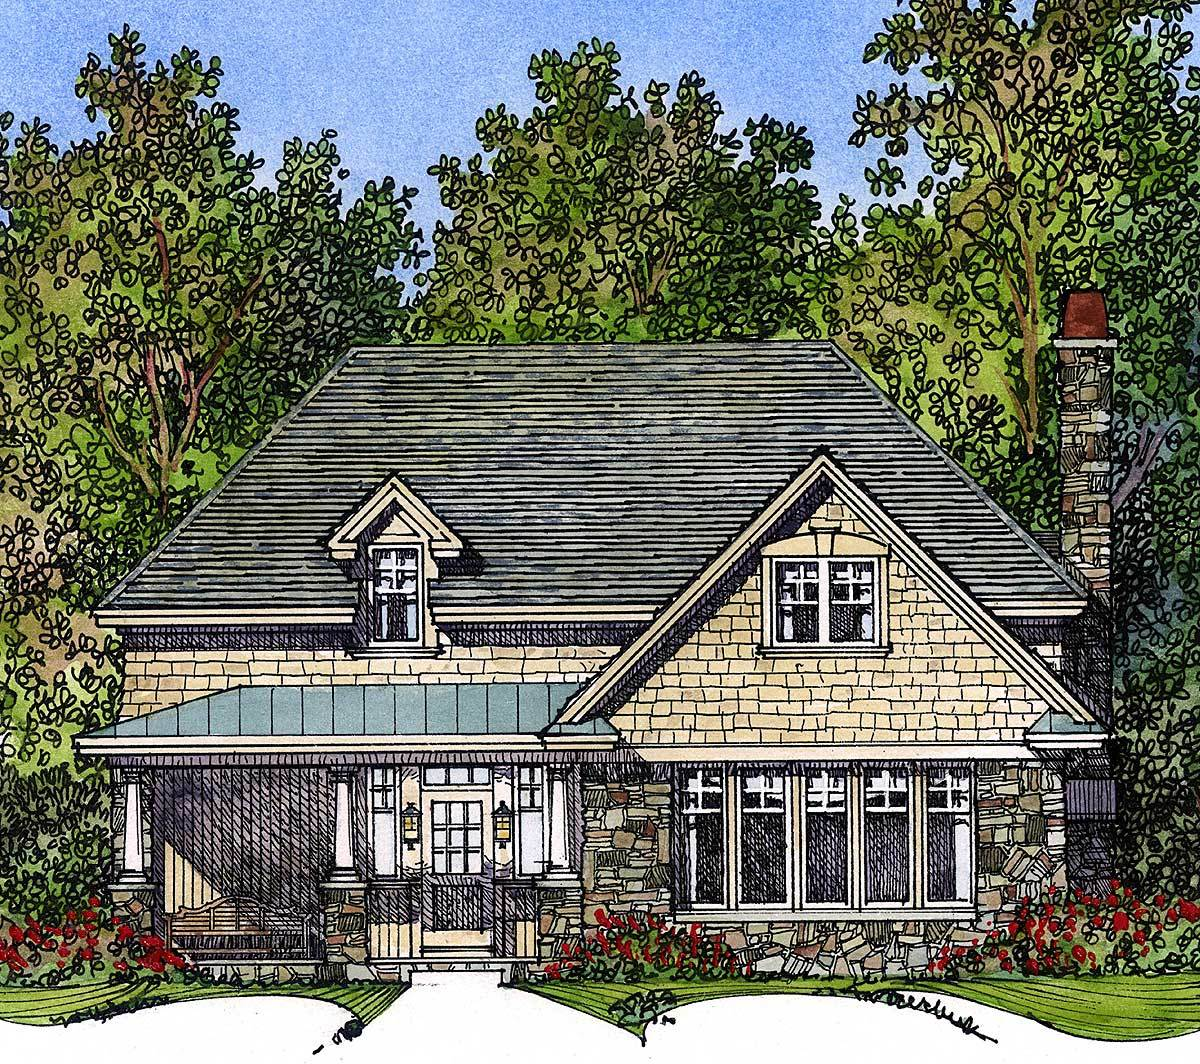 Charming Vacation Cottage 43025pf Architectural